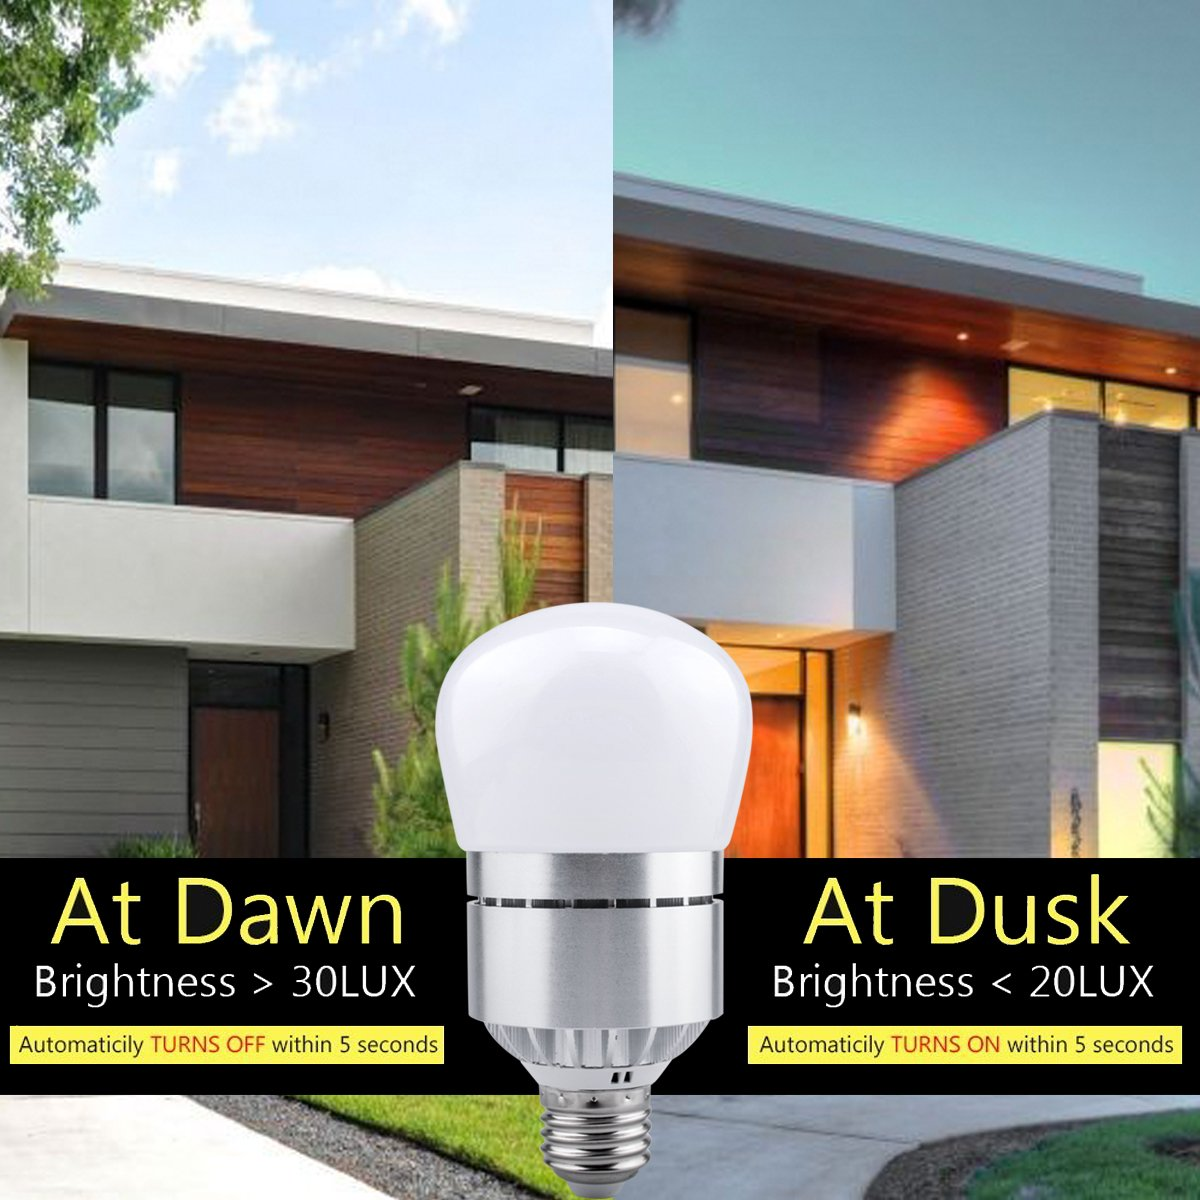 LED Light Bulbs Dusk to Dawn Sensor Lights Bulb Smart Lighting Lamp 12W 1200LM E26/E27 Socket 3200k Auto On/Off Indoor Outdoor Security Light for Porch, Garage, Driveway, Yard, Patio (Warm White) by Vgogfly (Image #5)